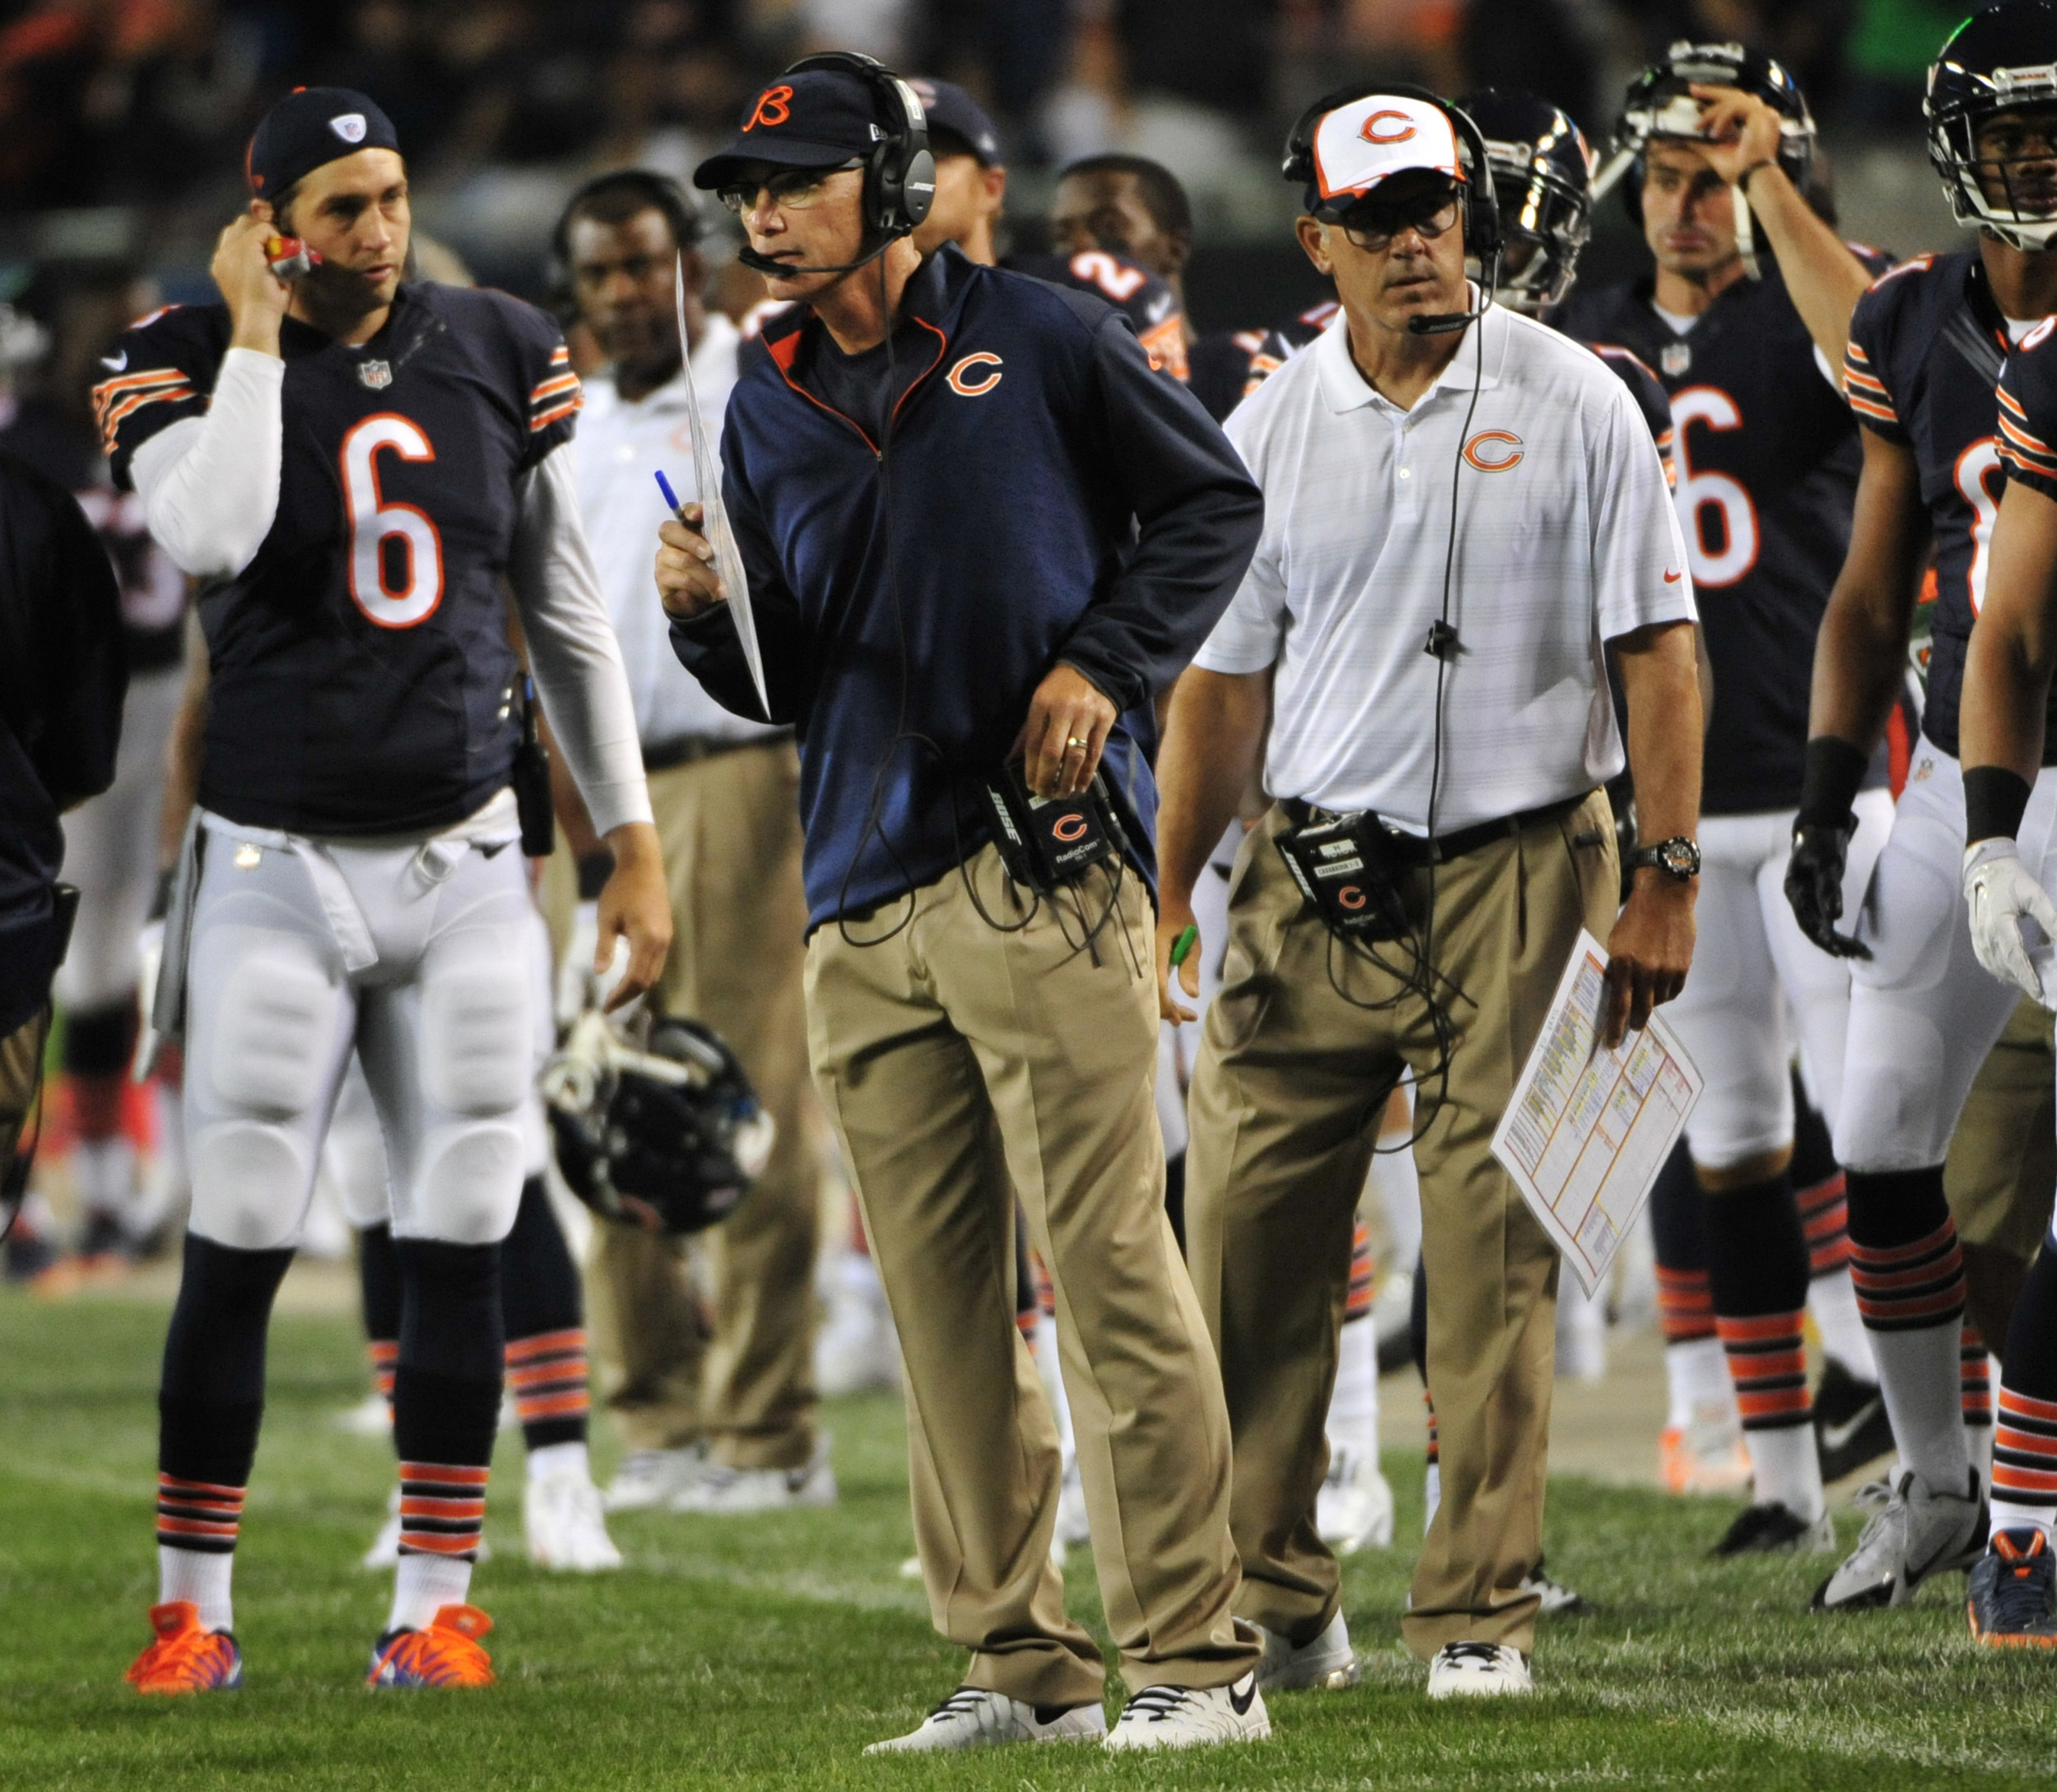 The Bears have the pieces to be a Super Bowl winner